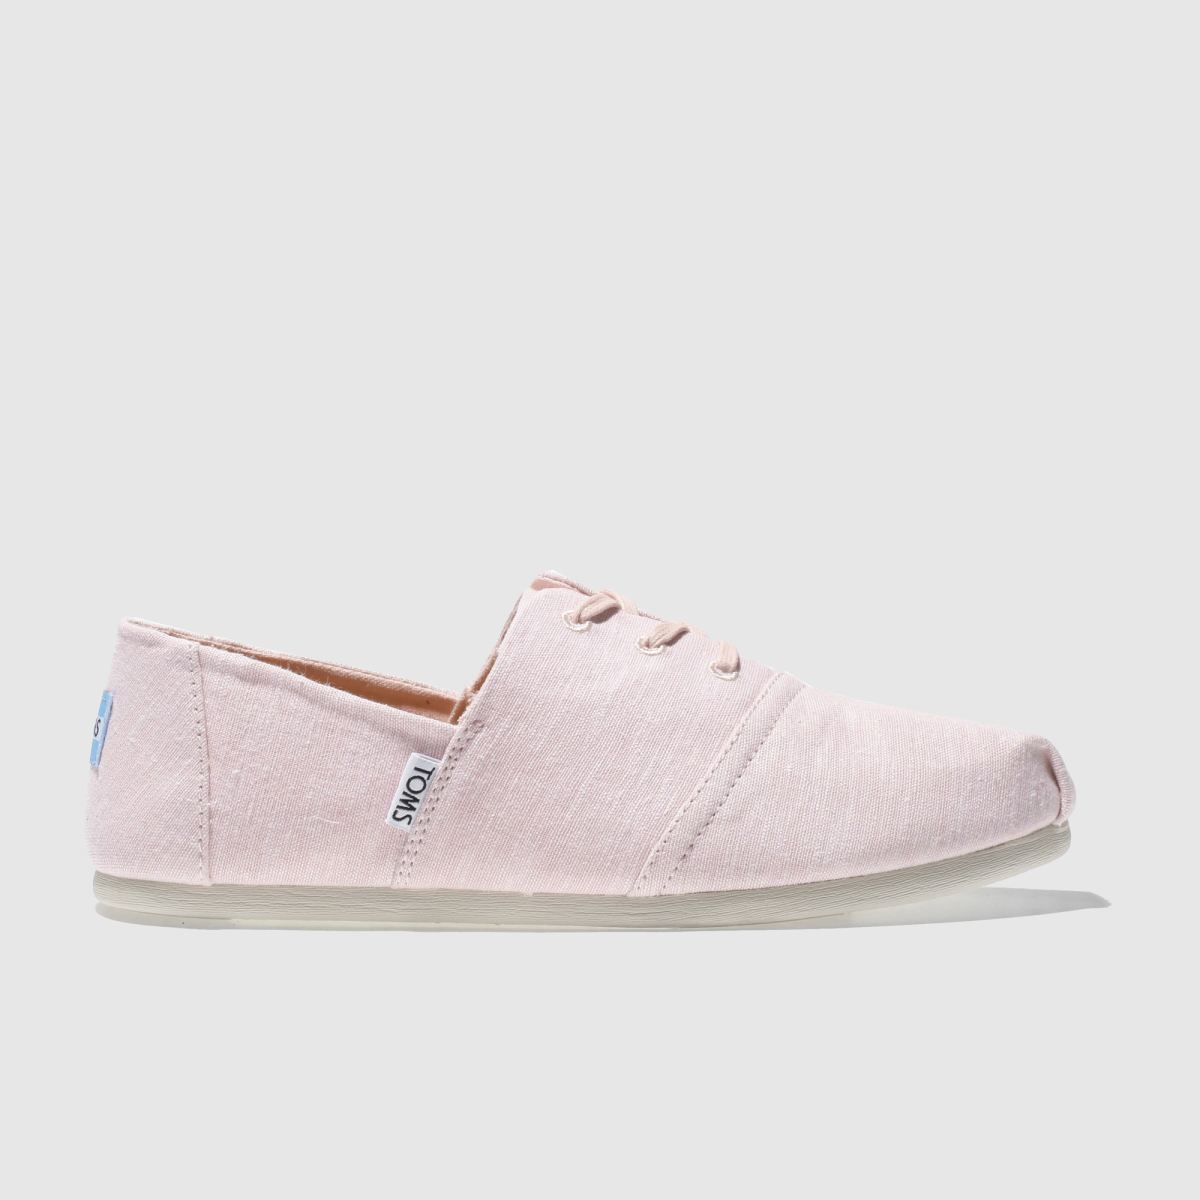 Toms Pale Pink Hermosa Flat Shoes